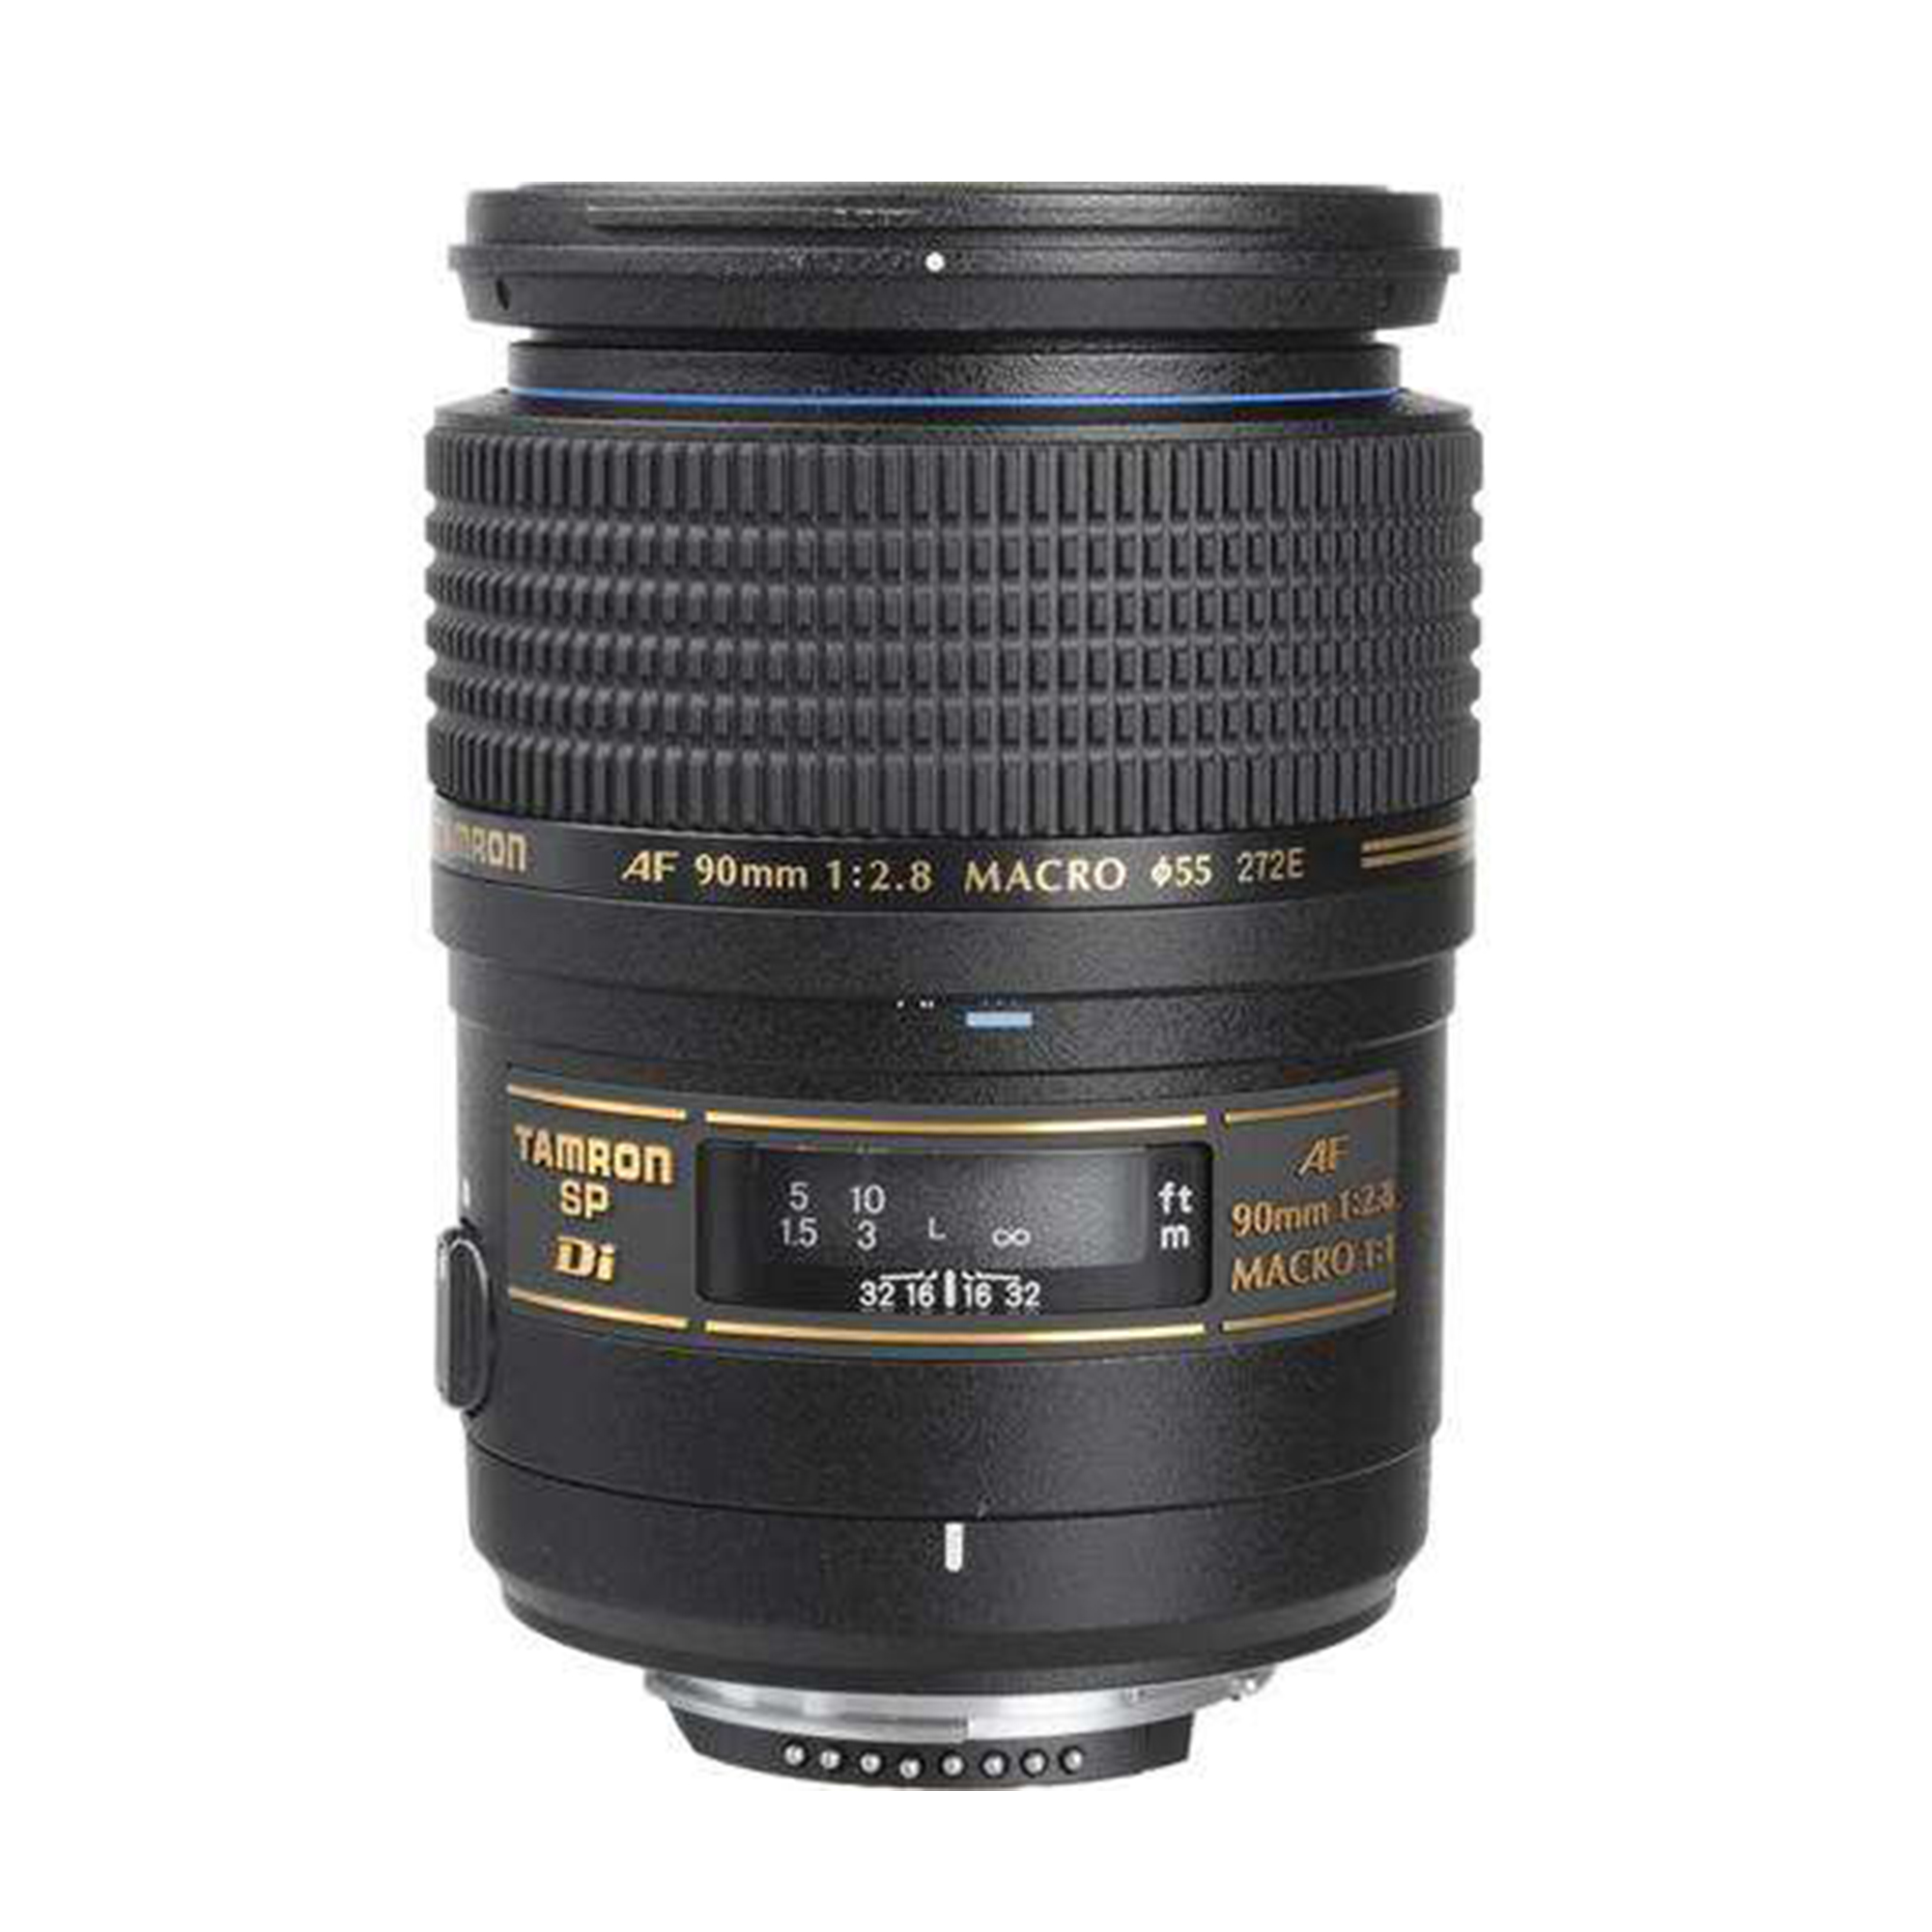 Tamron 90mm f/2.8 SP AF Di Macro Lens for Canon EF